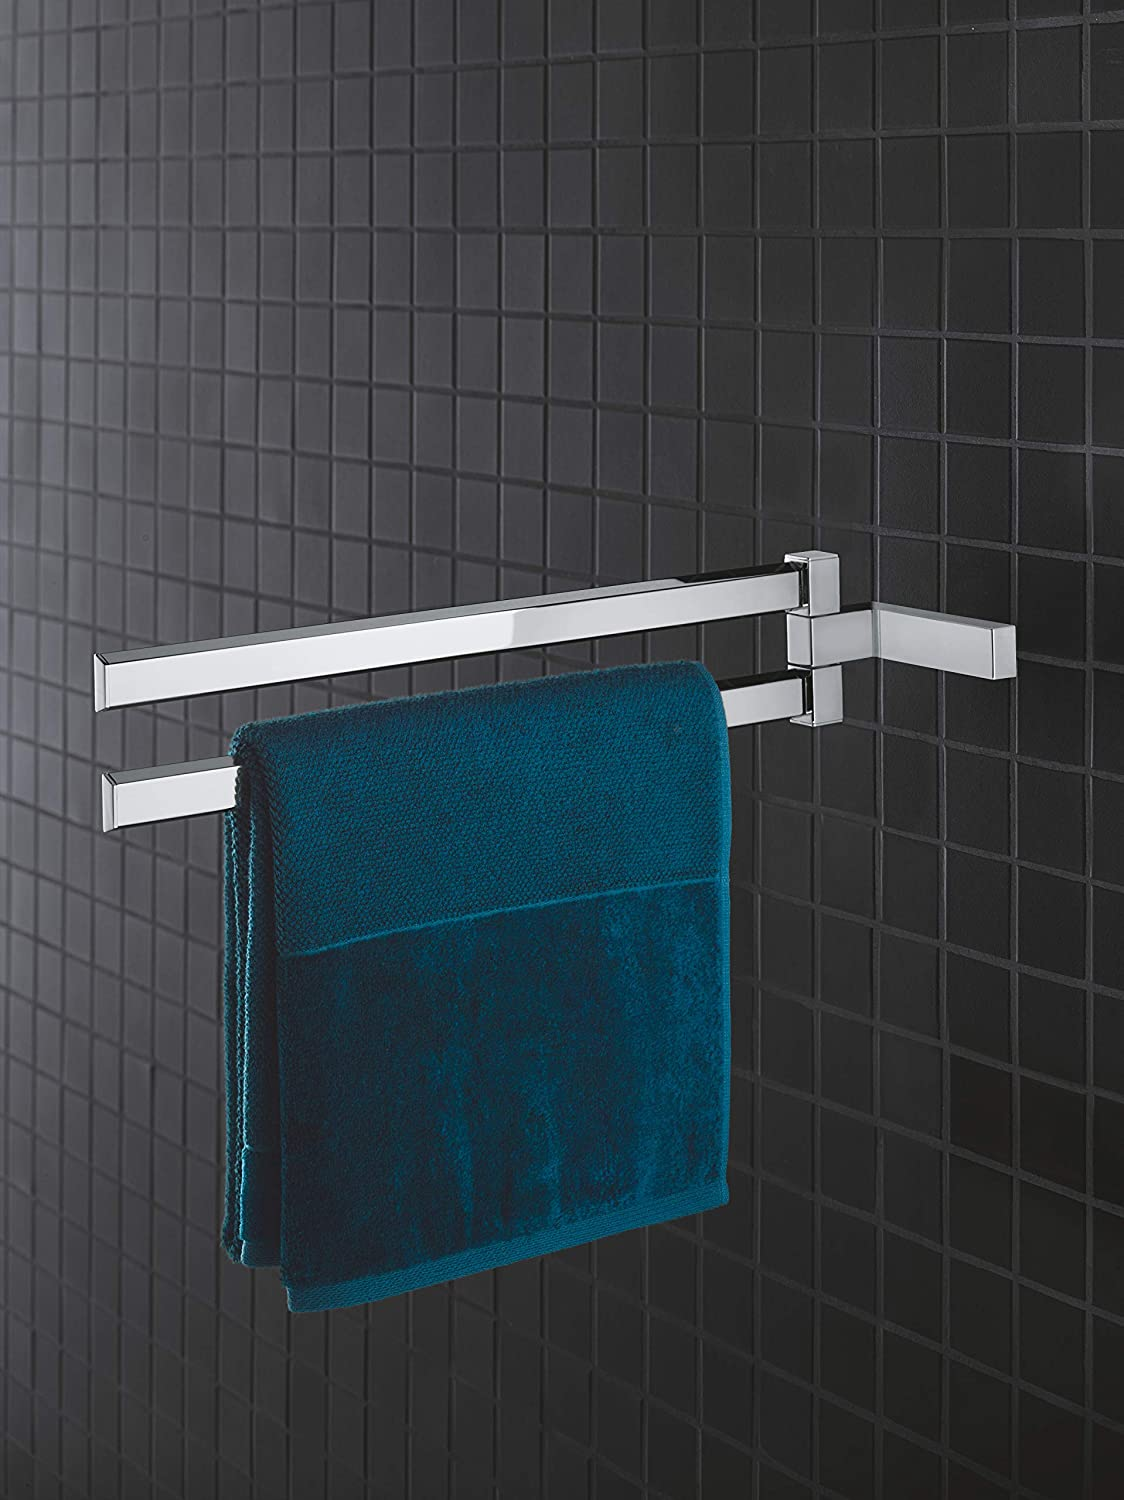 GROHE Selection Cube Bad Accessoires Doppel Handtuchhalter Material Metall chrom